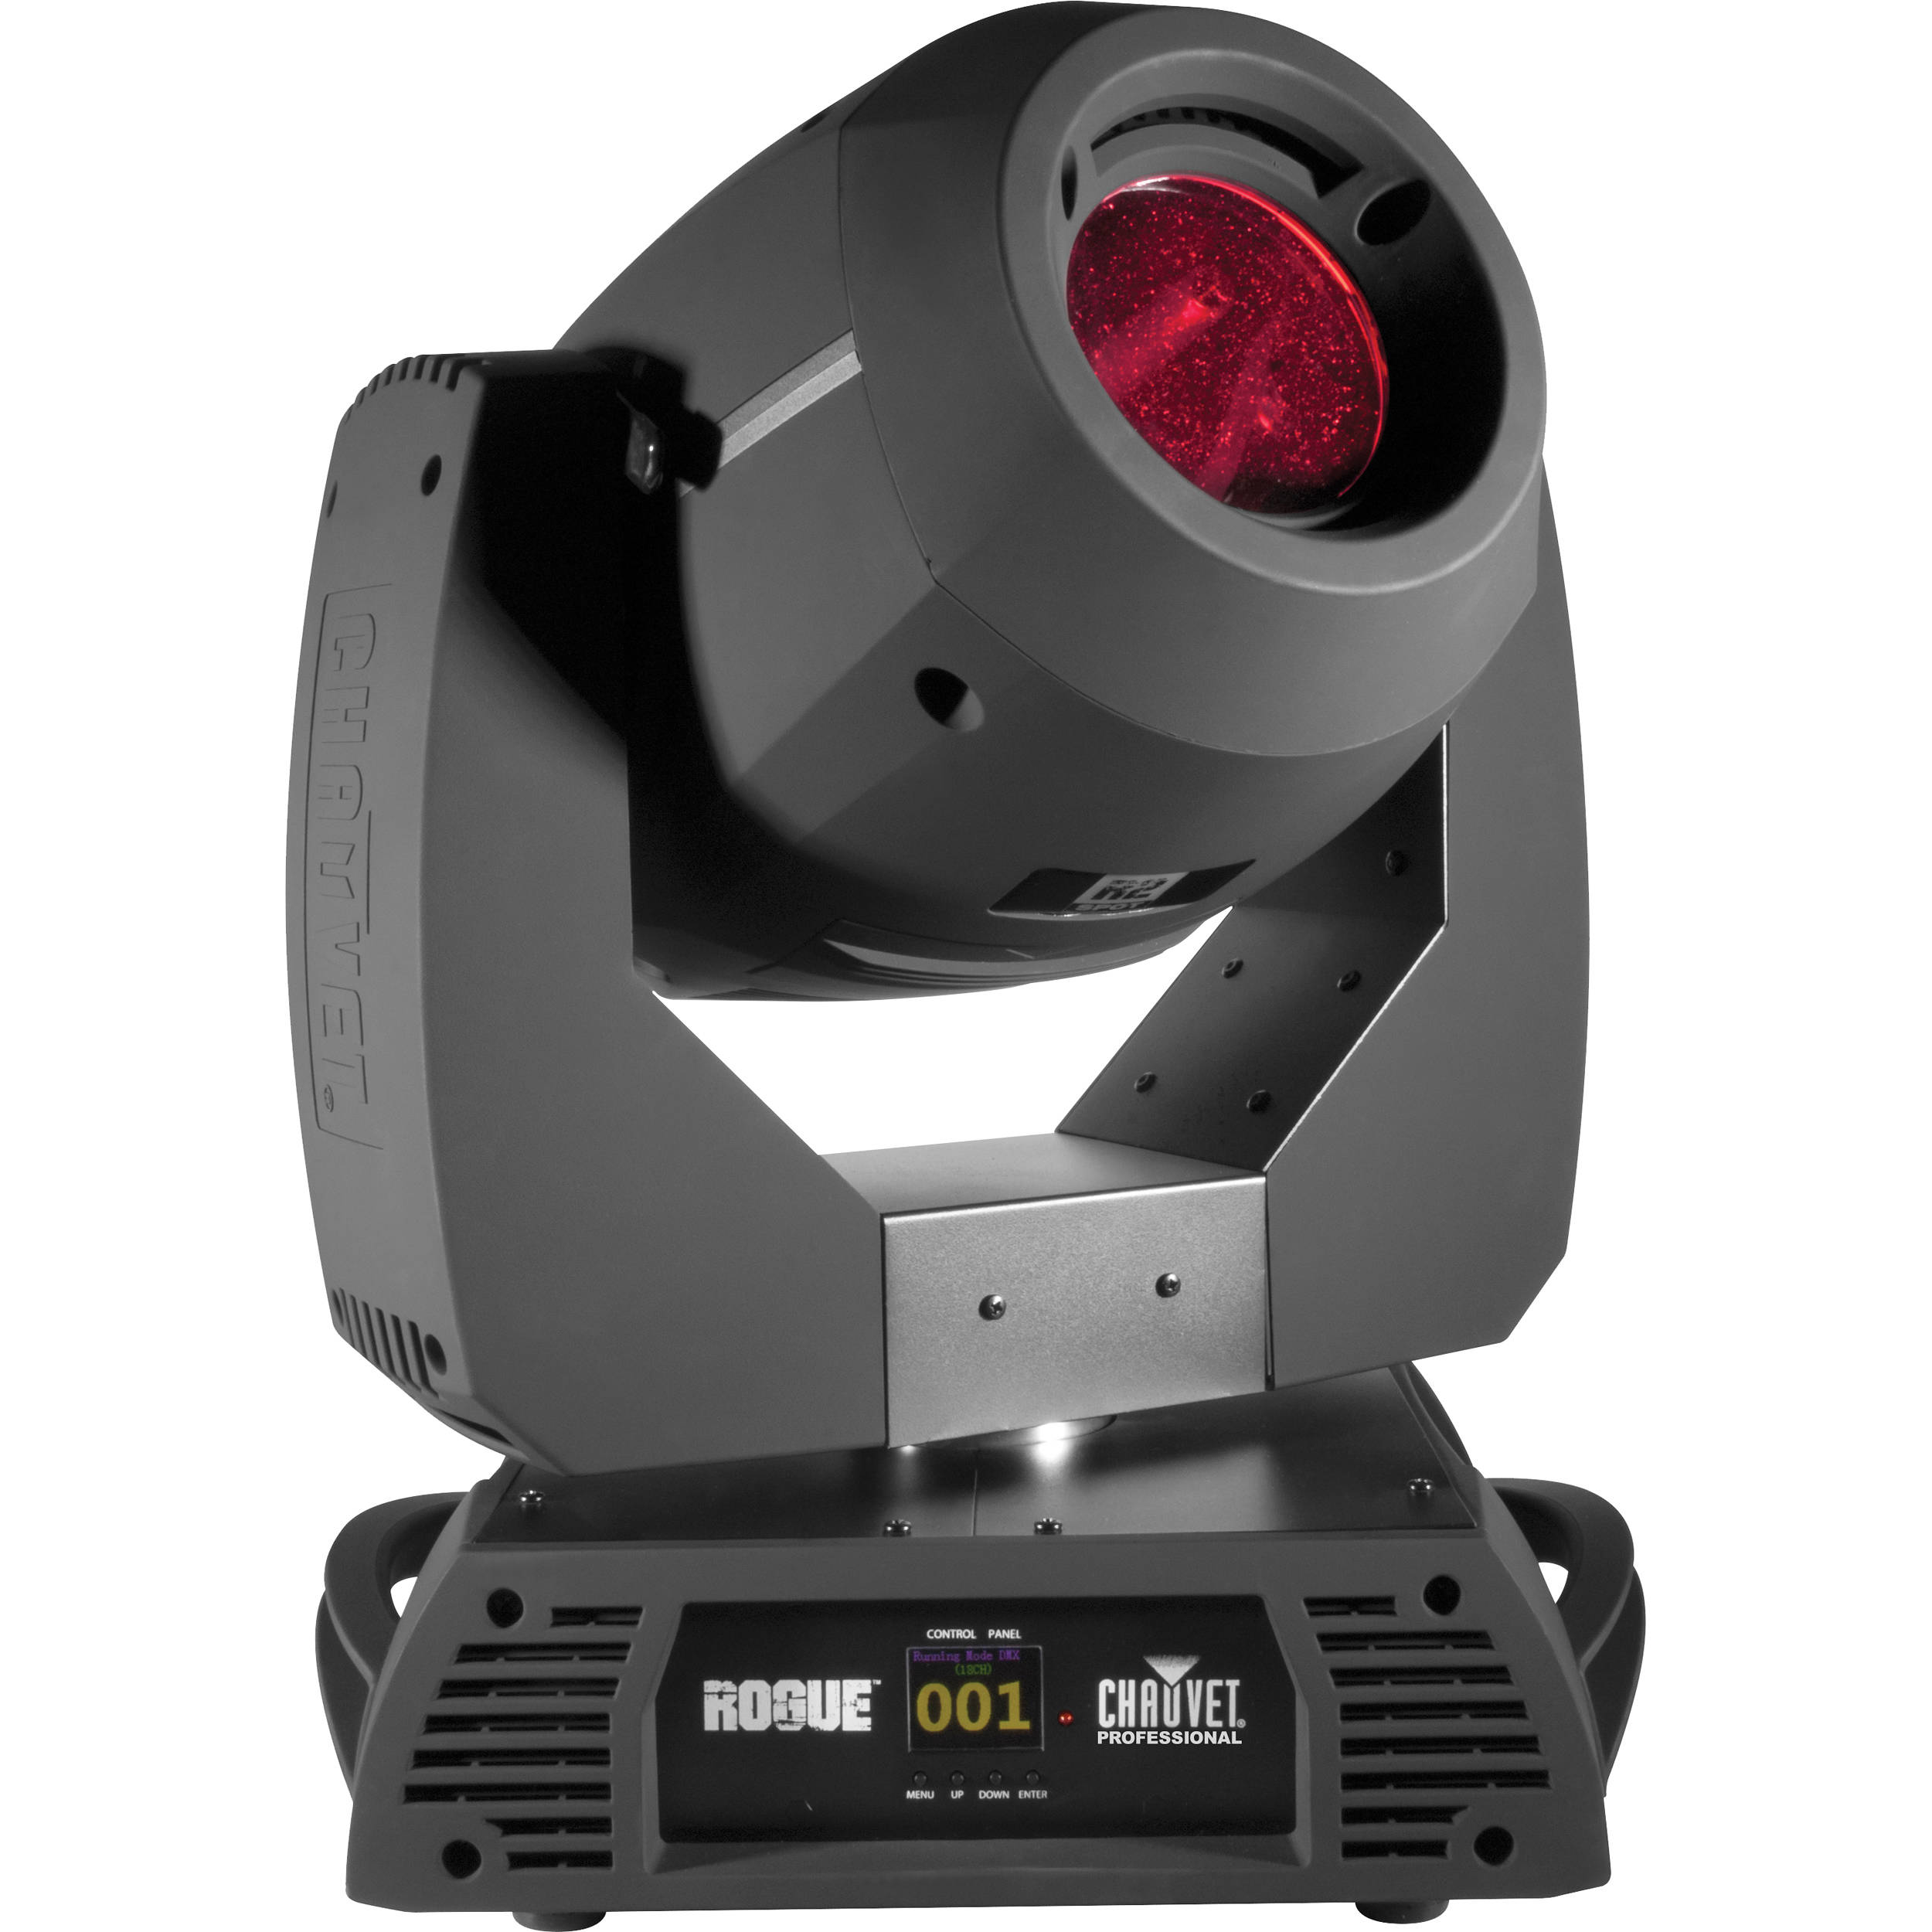 chauvet rogue r2 spot moving head led light fixtures with road case 2 pack. Black Bedroom Furniture Sets. Home Design Ideas